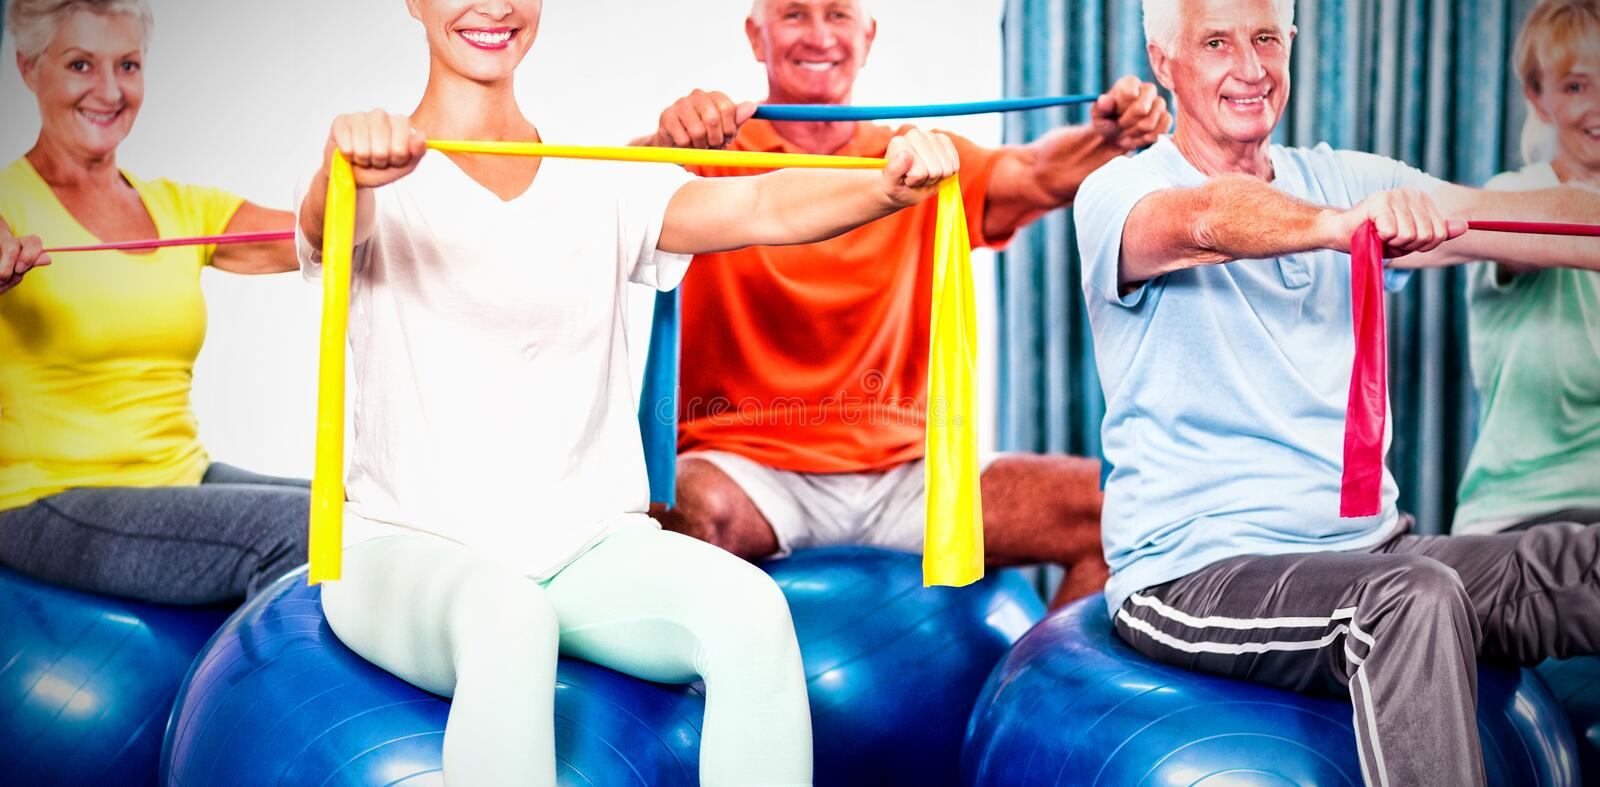 Portrait of seniors using exercise ball and stretching bands stock photo